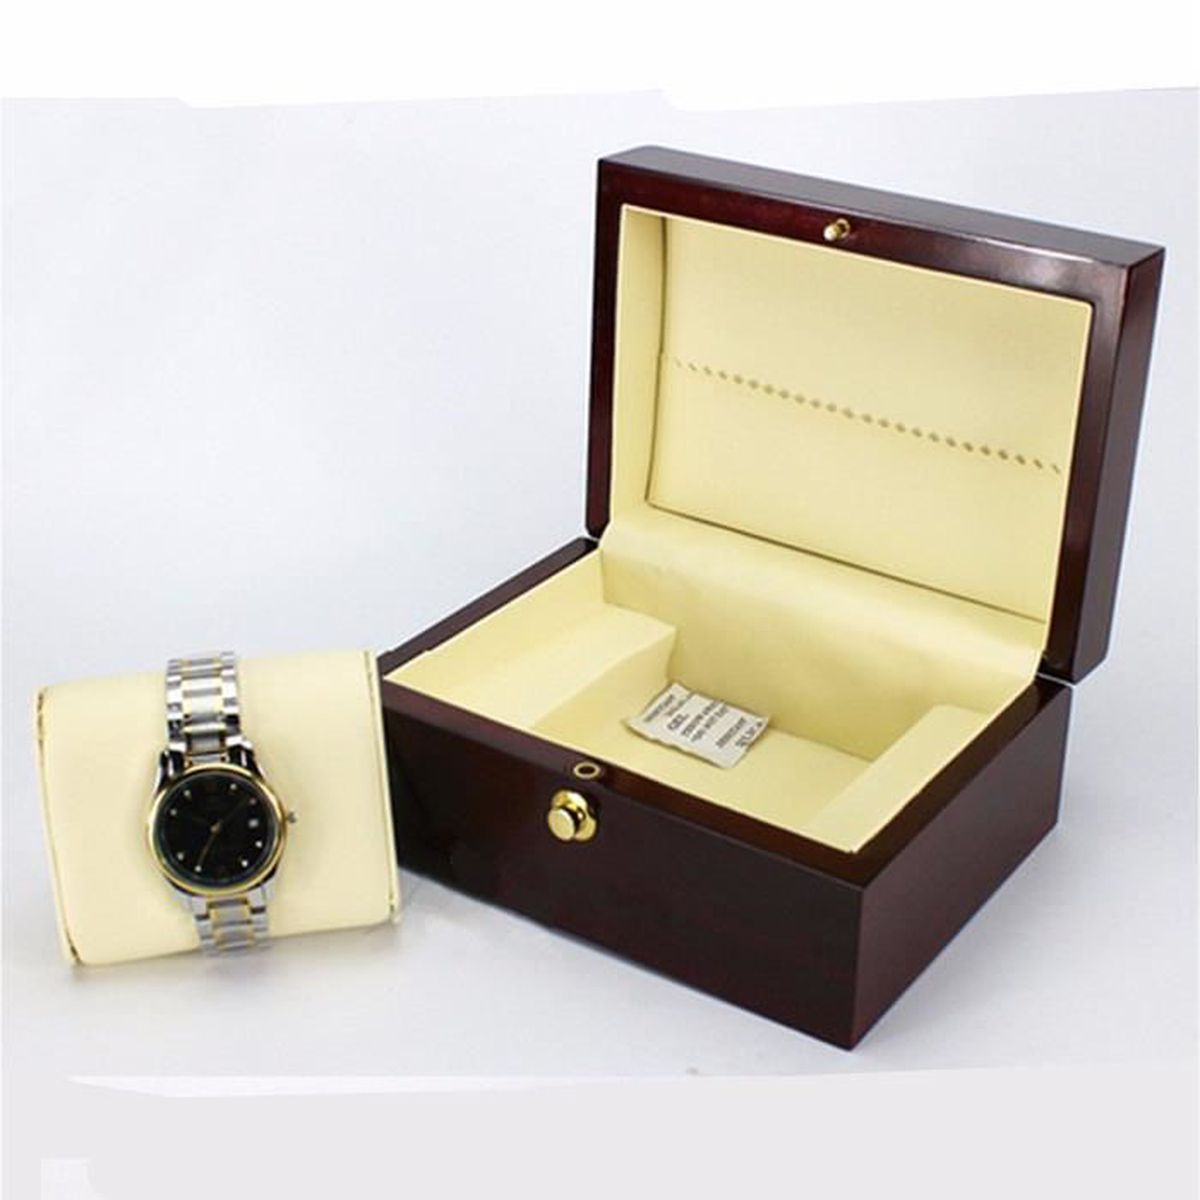 uk bo te montre bois coffret crin pr sentoir bracelet. Black Bedroom Furniture Sets. Home Design Ideas